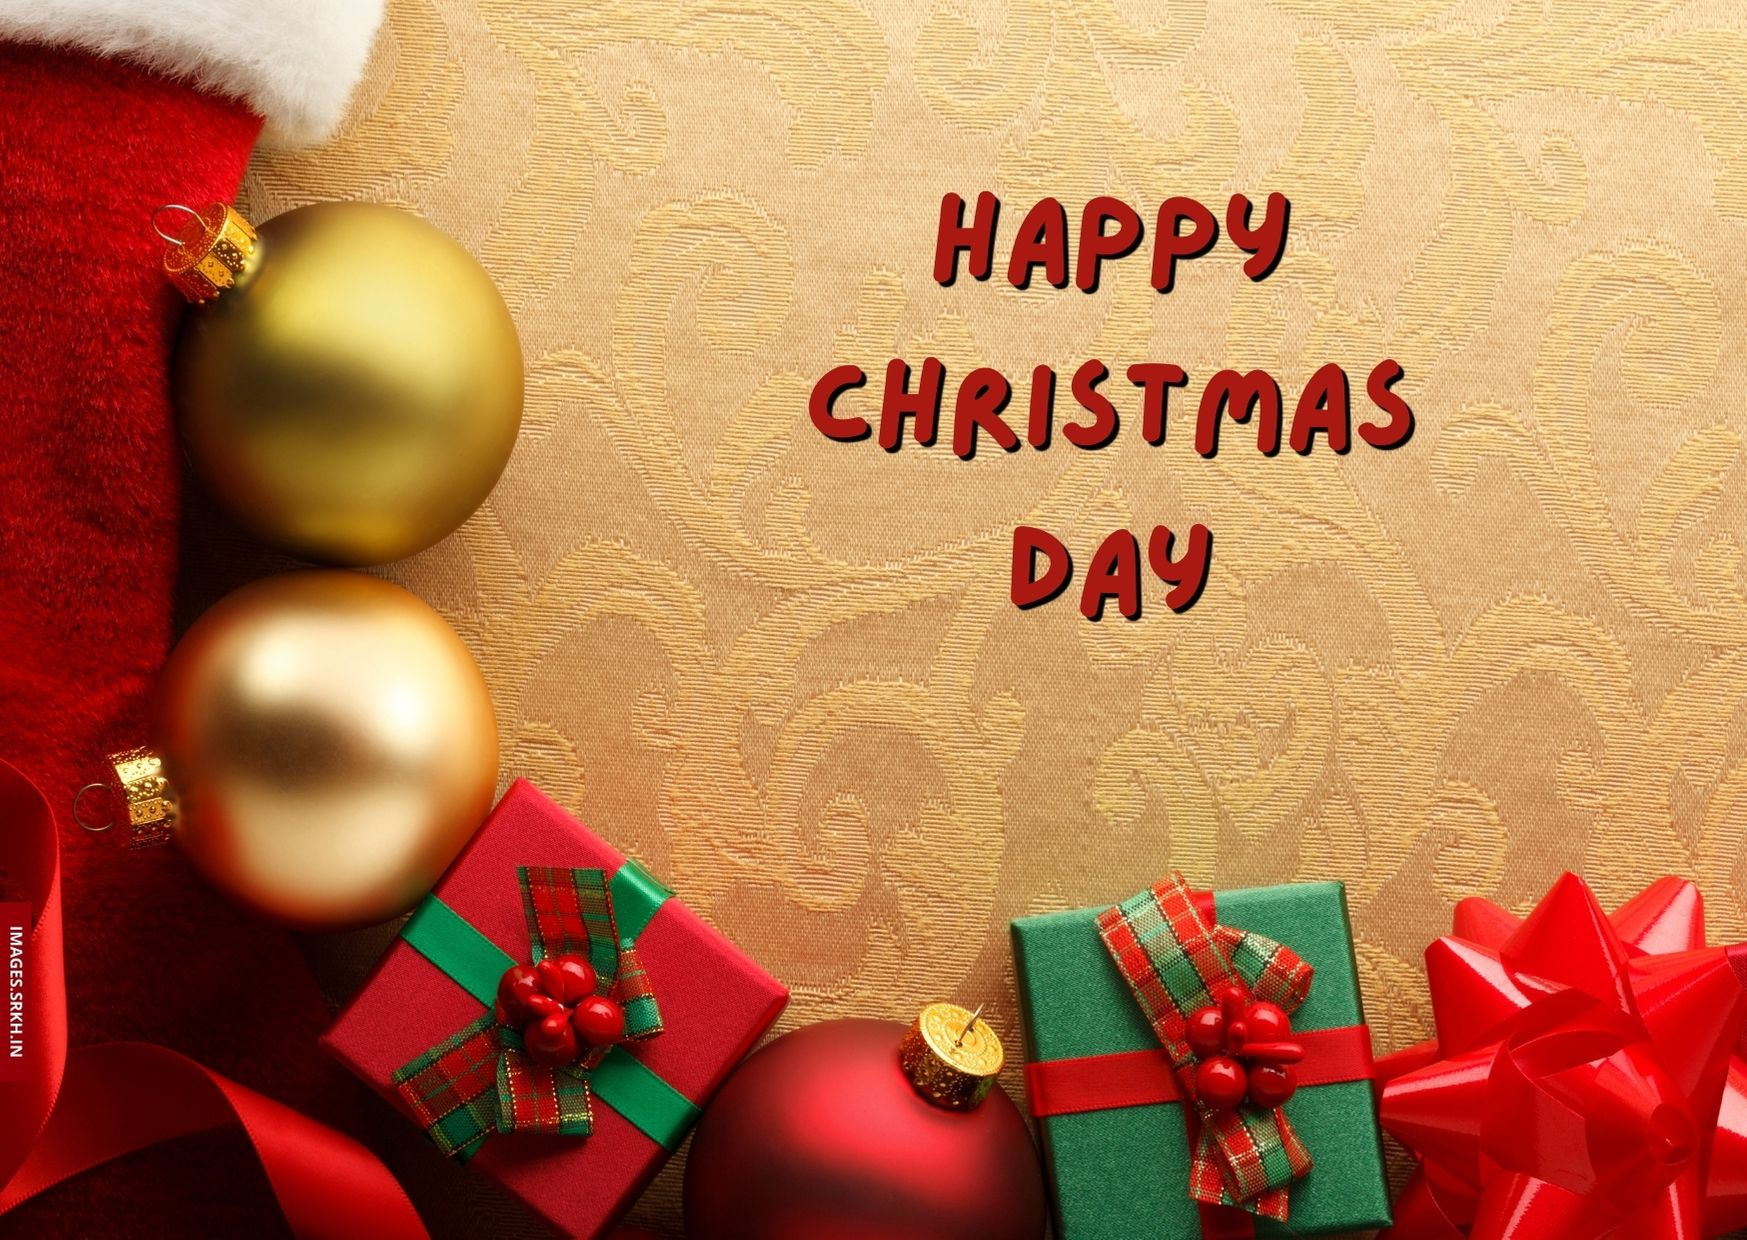 Christmas Day Images